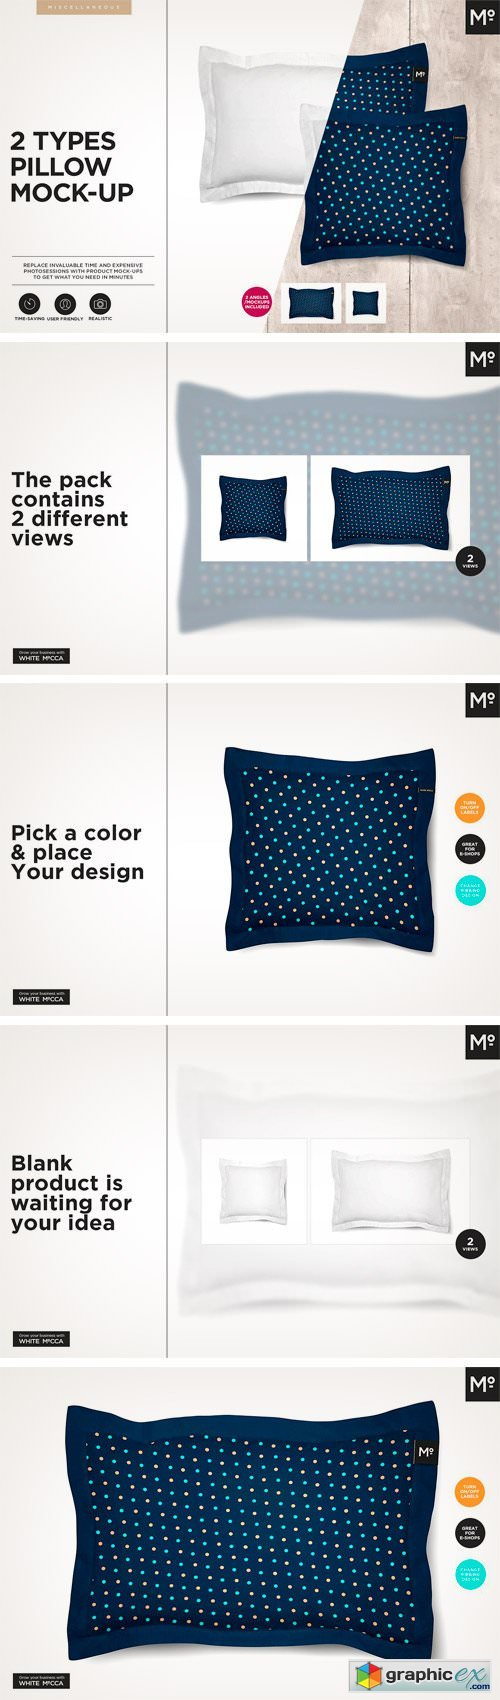 2 Types Pillow Mock-up